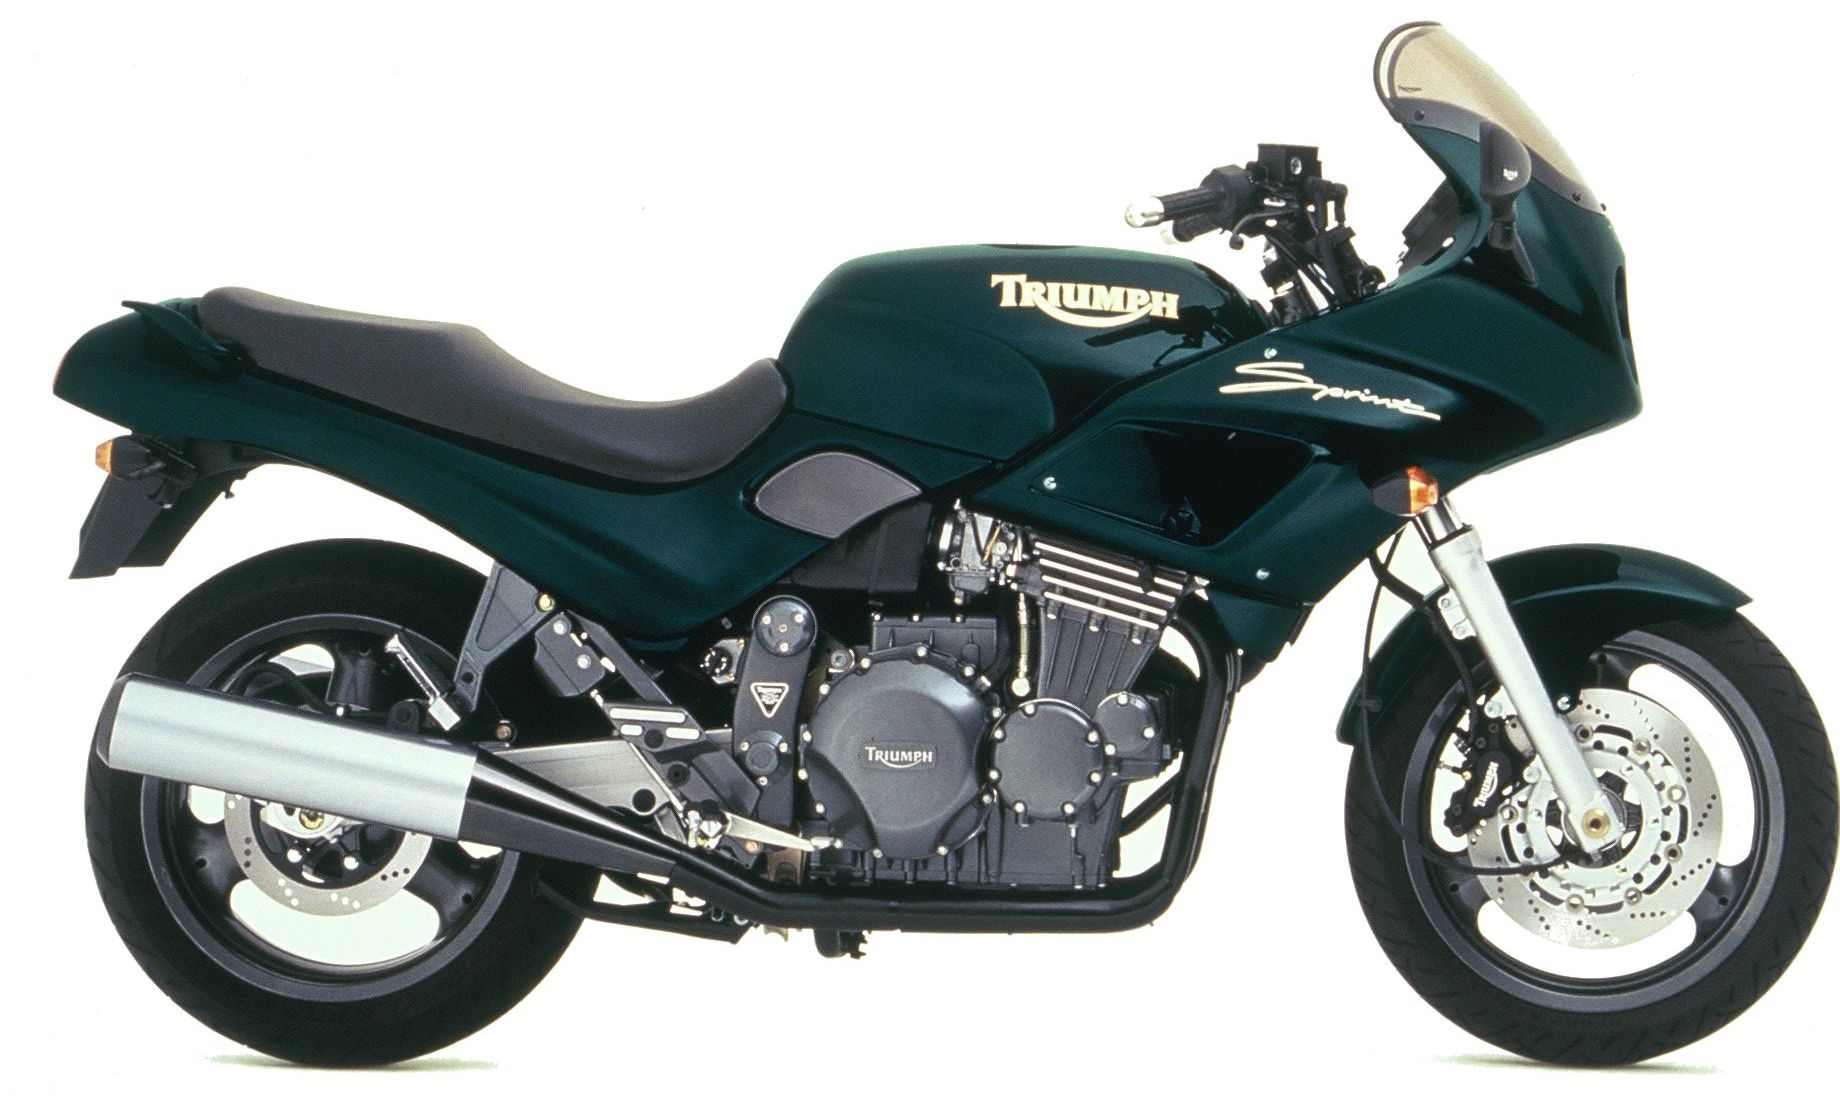 Triumph Trident 900 1997 wallpapers #130477